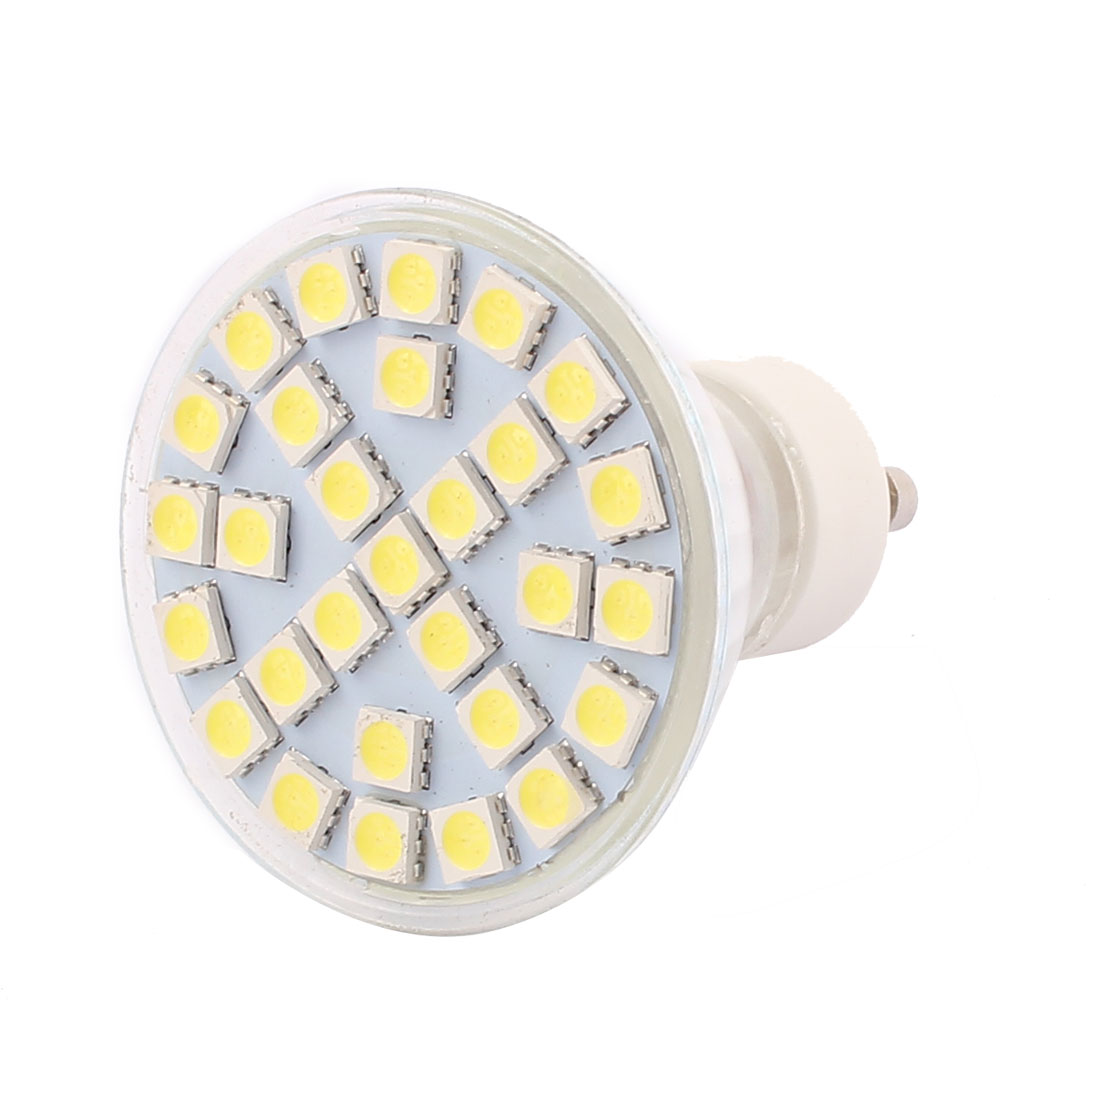 GU10 SMD5050 29LEDs 5W Glass Energy Saving LED Spotlight Lamp Bulb White AC 220V